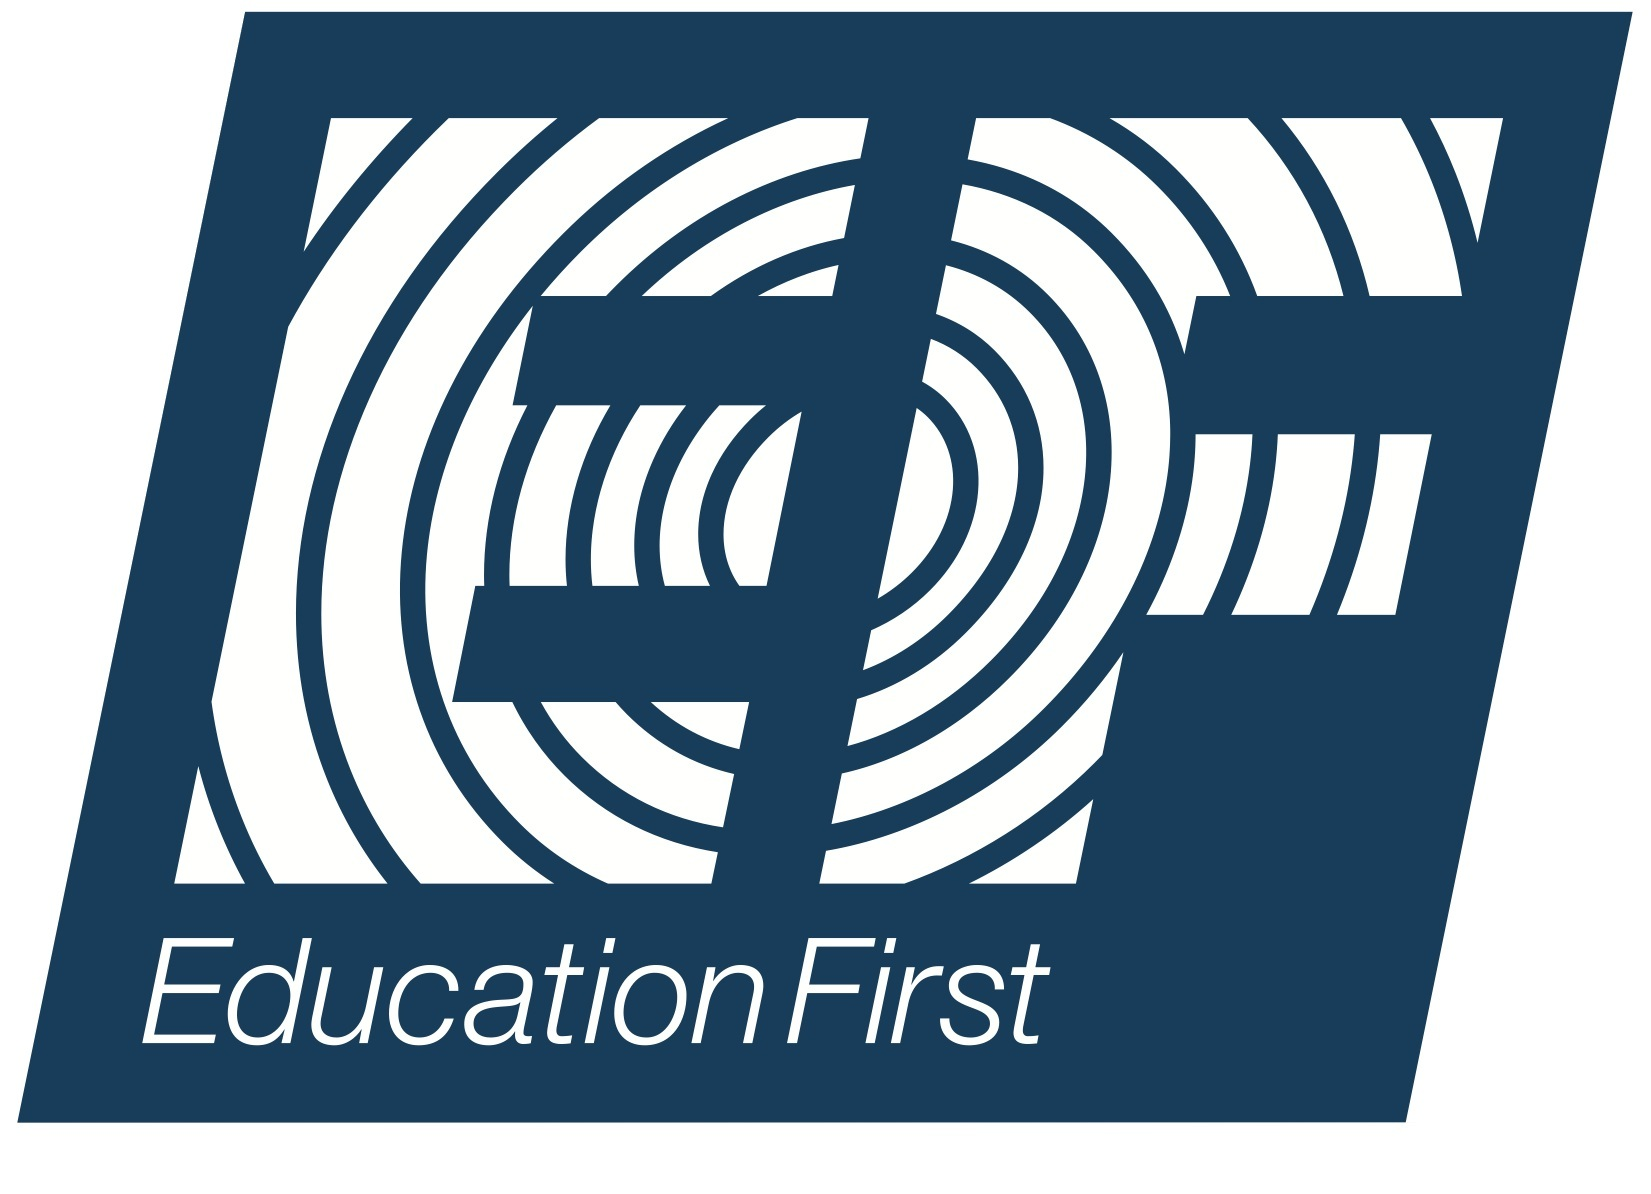 EF-Education-First1.jpg